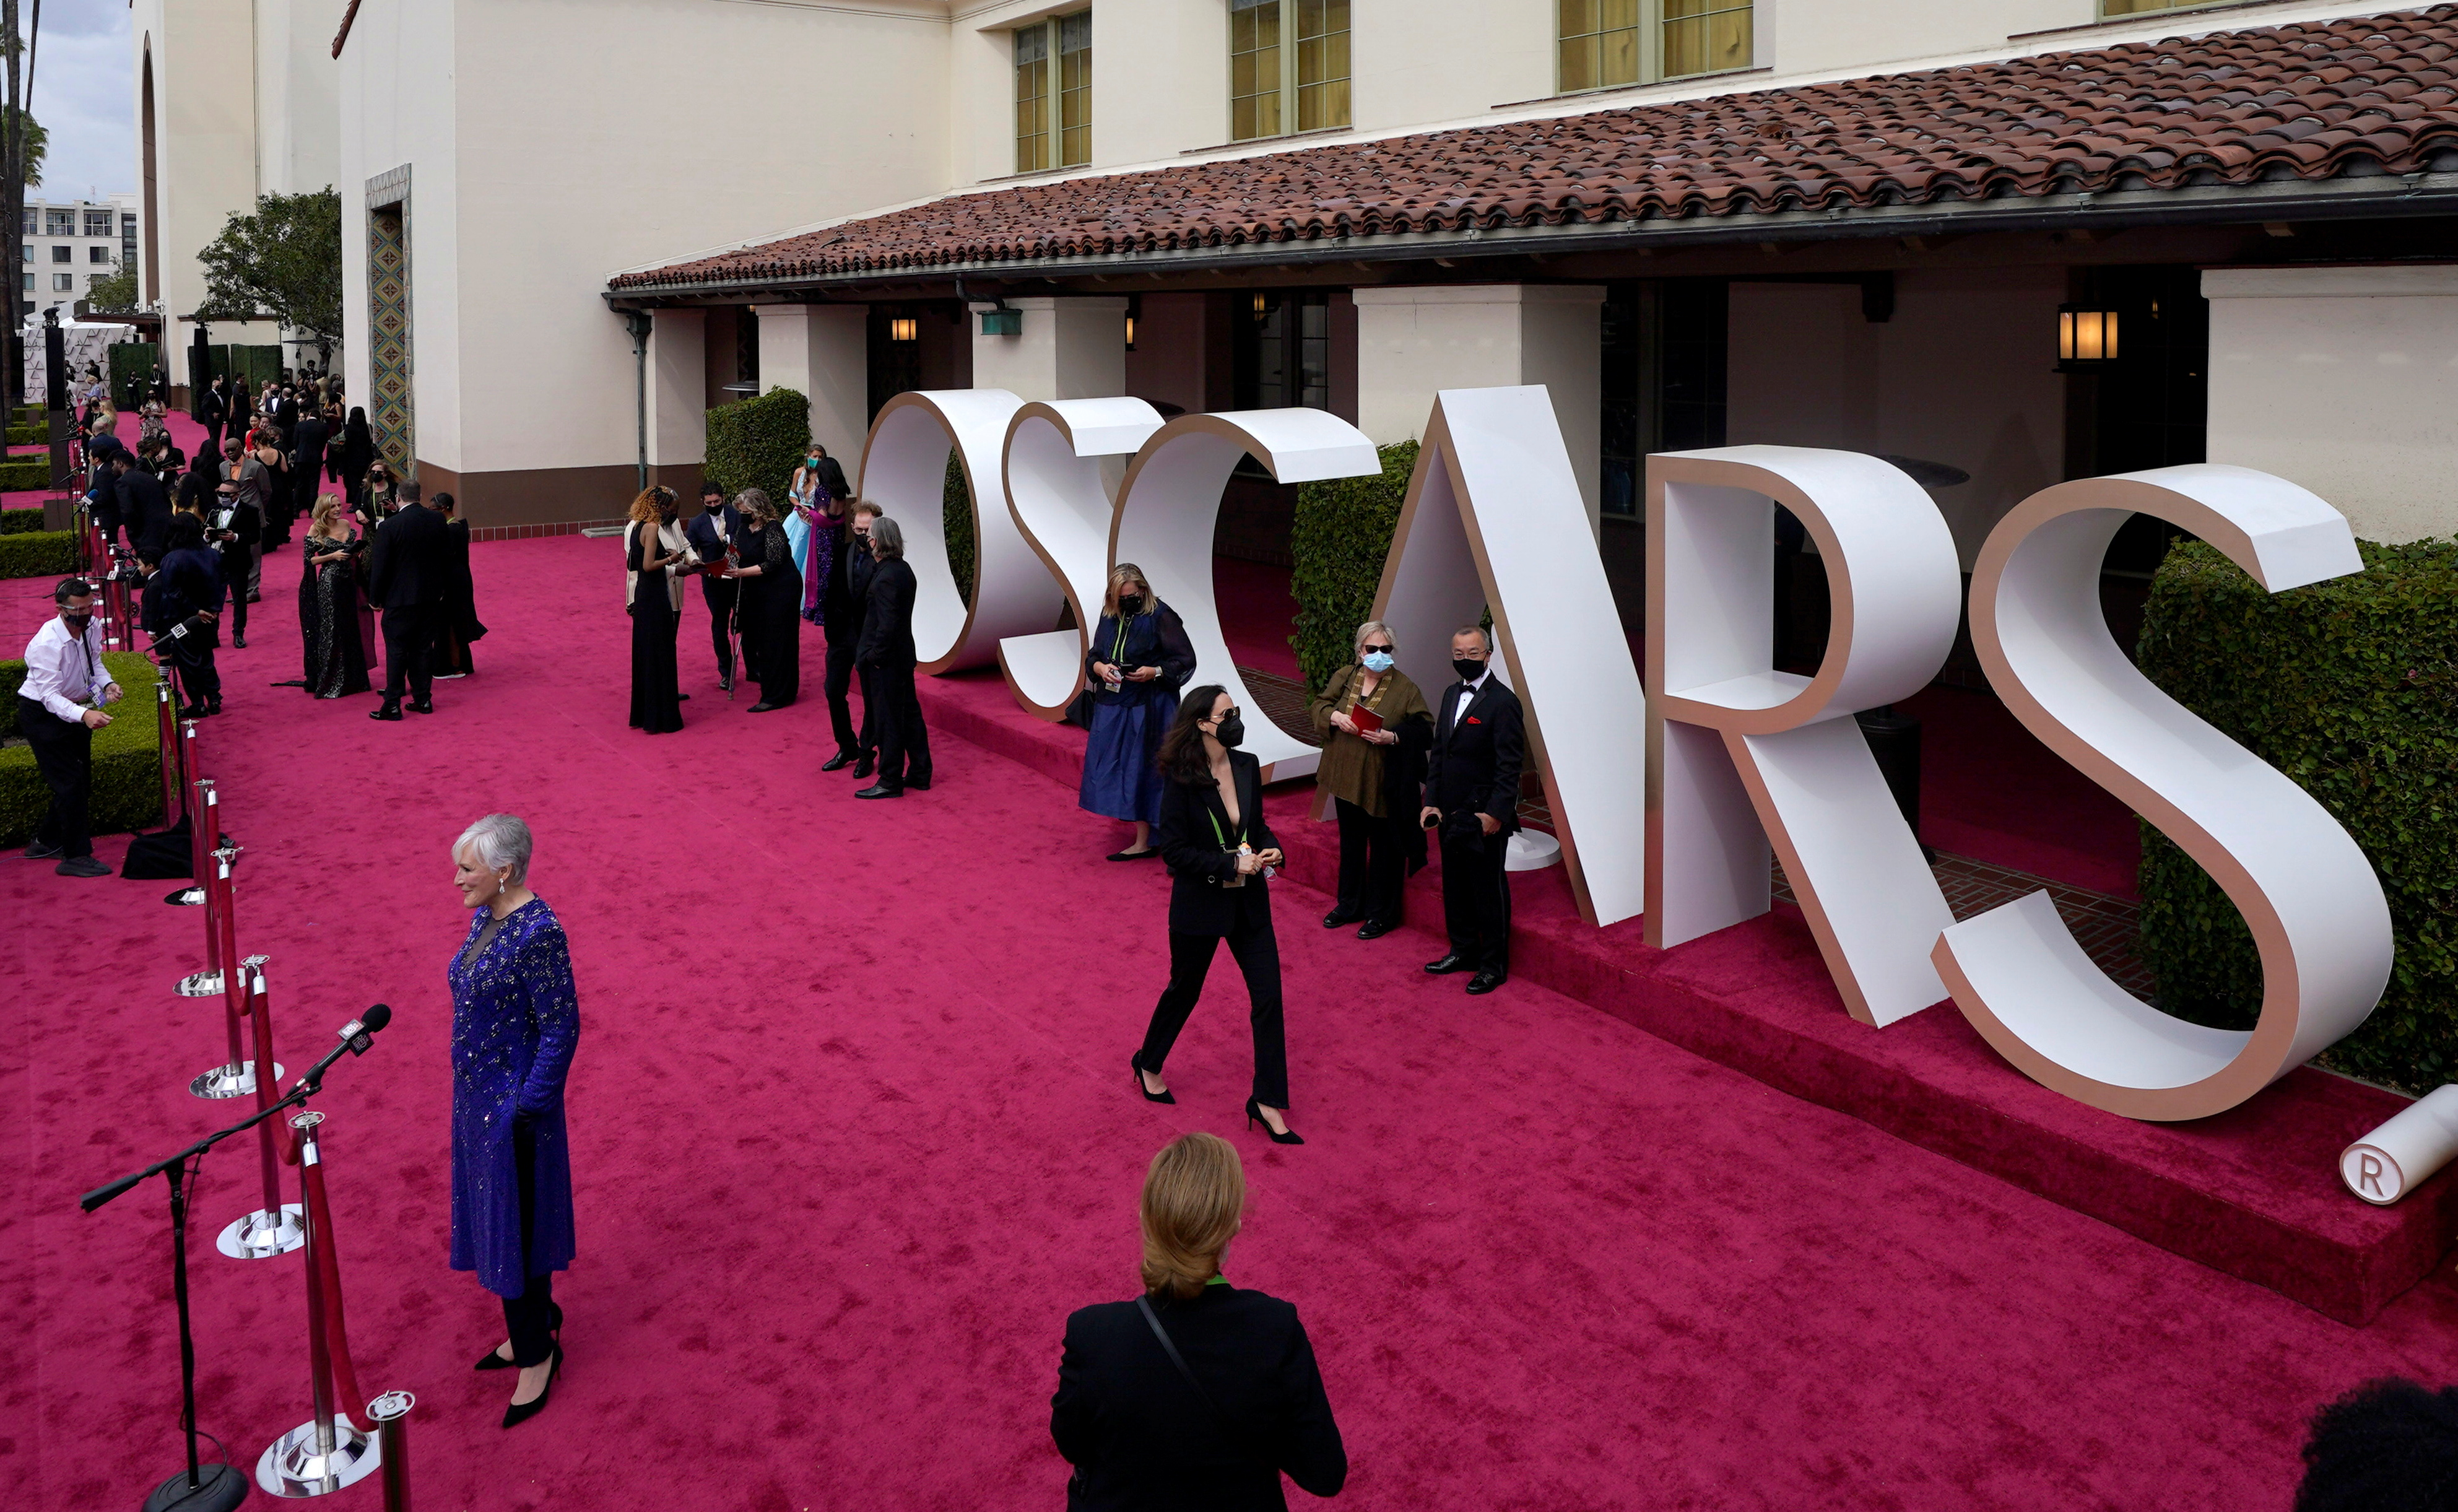 Glenn Close is interviewed on the Oscars red carpet for the 93rd Academy Awards in Los Angeles, California, U.S., April 25, 2021. Chris Pizzello/Pool via REUTERS